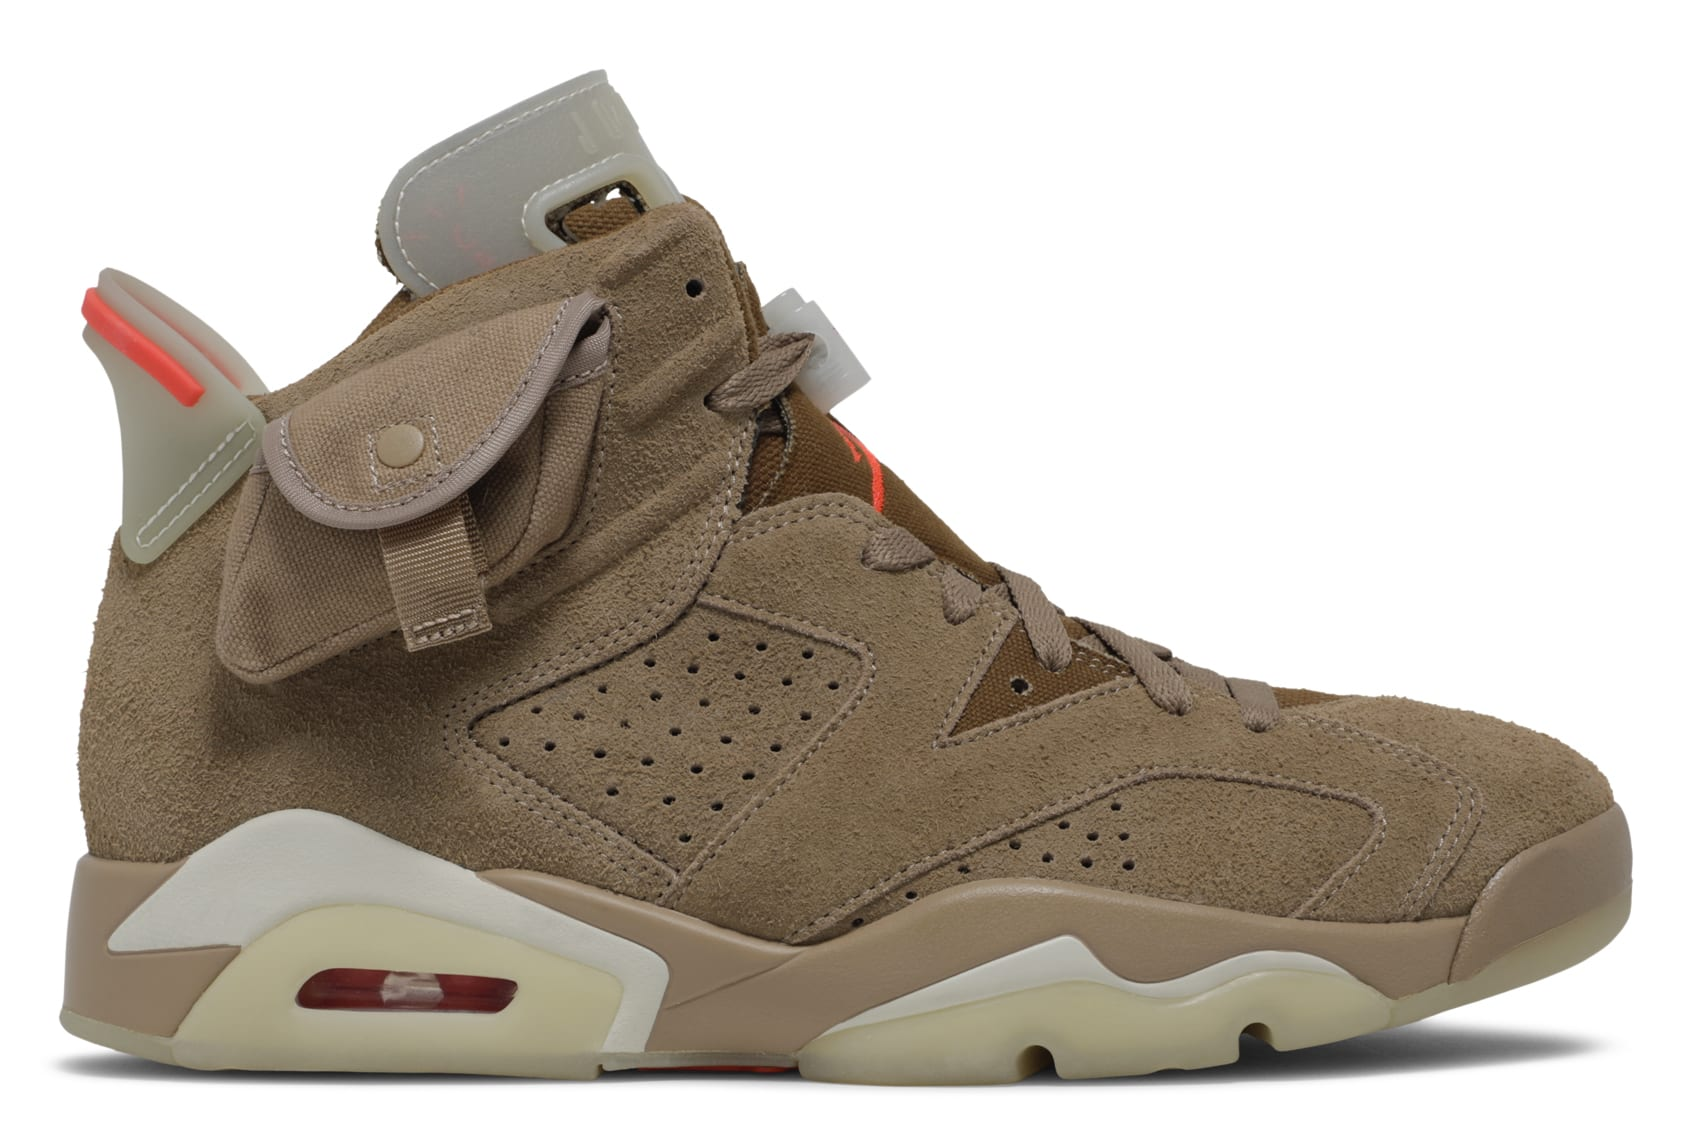 Travis Scott x Air Jordan 6 VI British Khaki Release Date DH0690-200 Profile